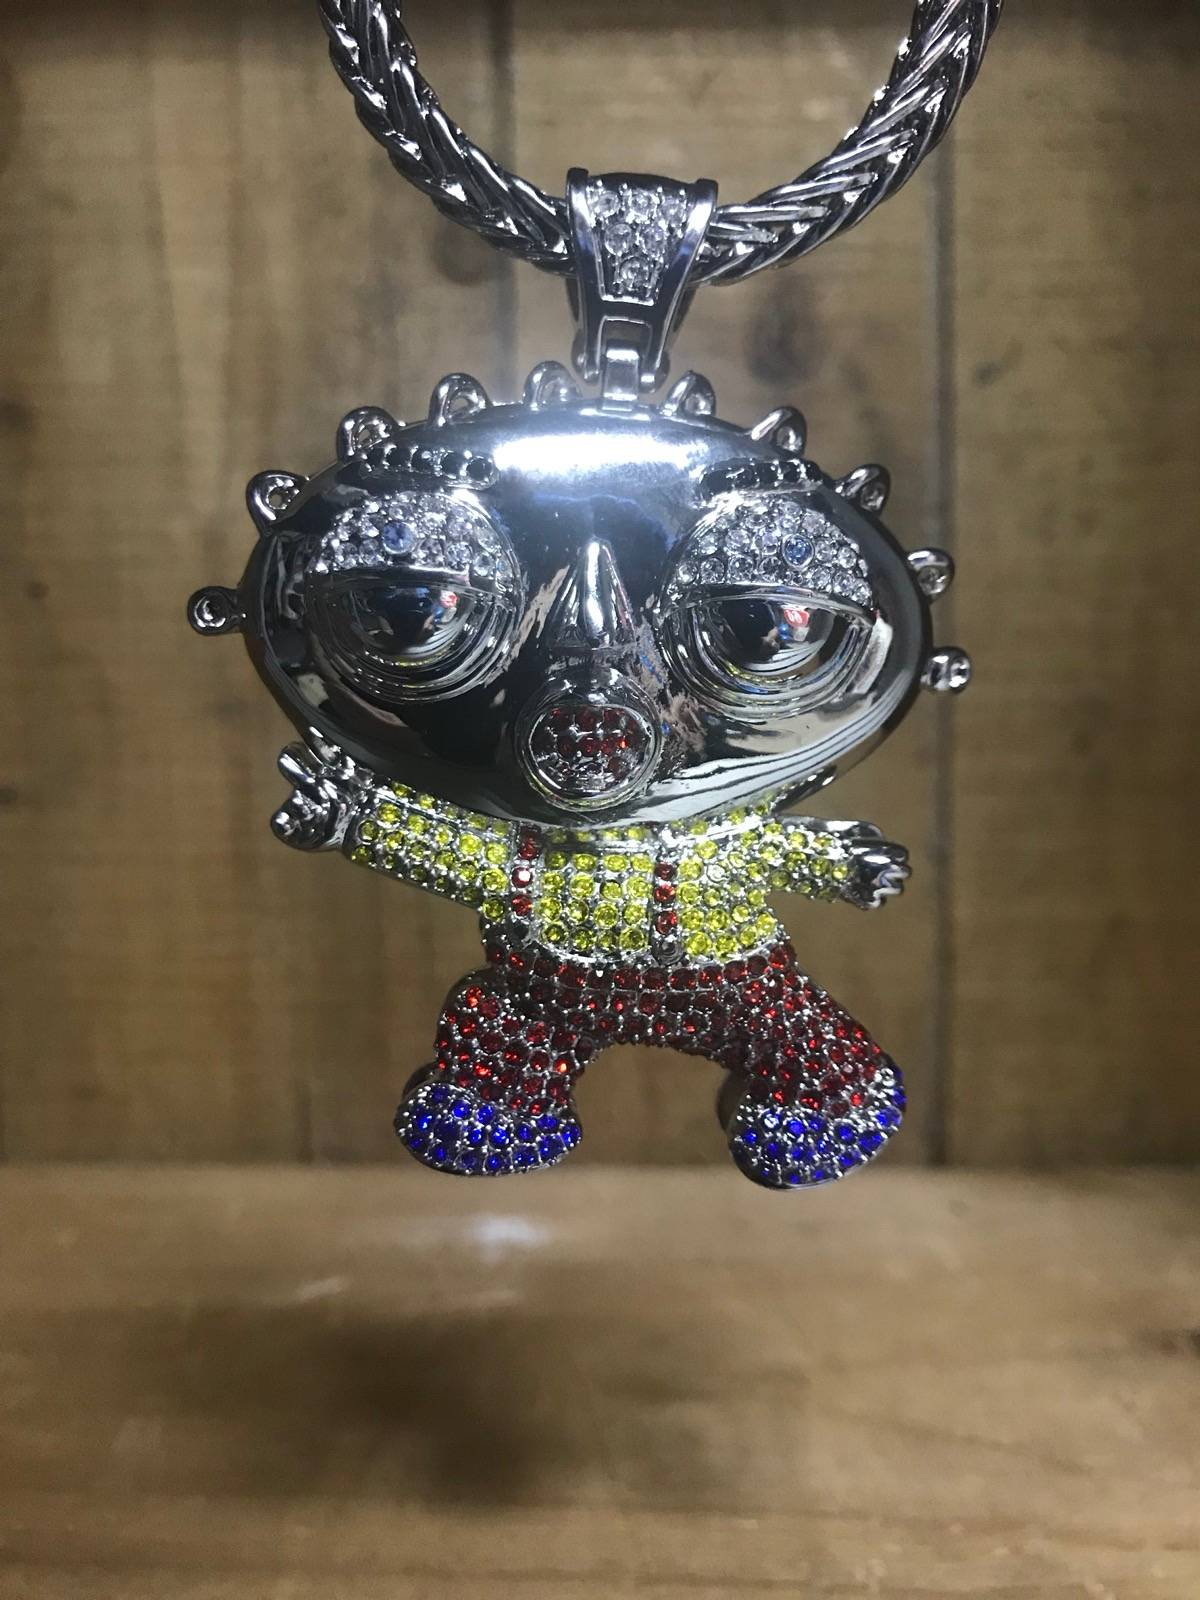 Other stewie xl rapper pendant silver wfree chain size one size other stewie xl rapper pendant silver wfree chain size one size jewelry watches for sale grailed aloadofball Images